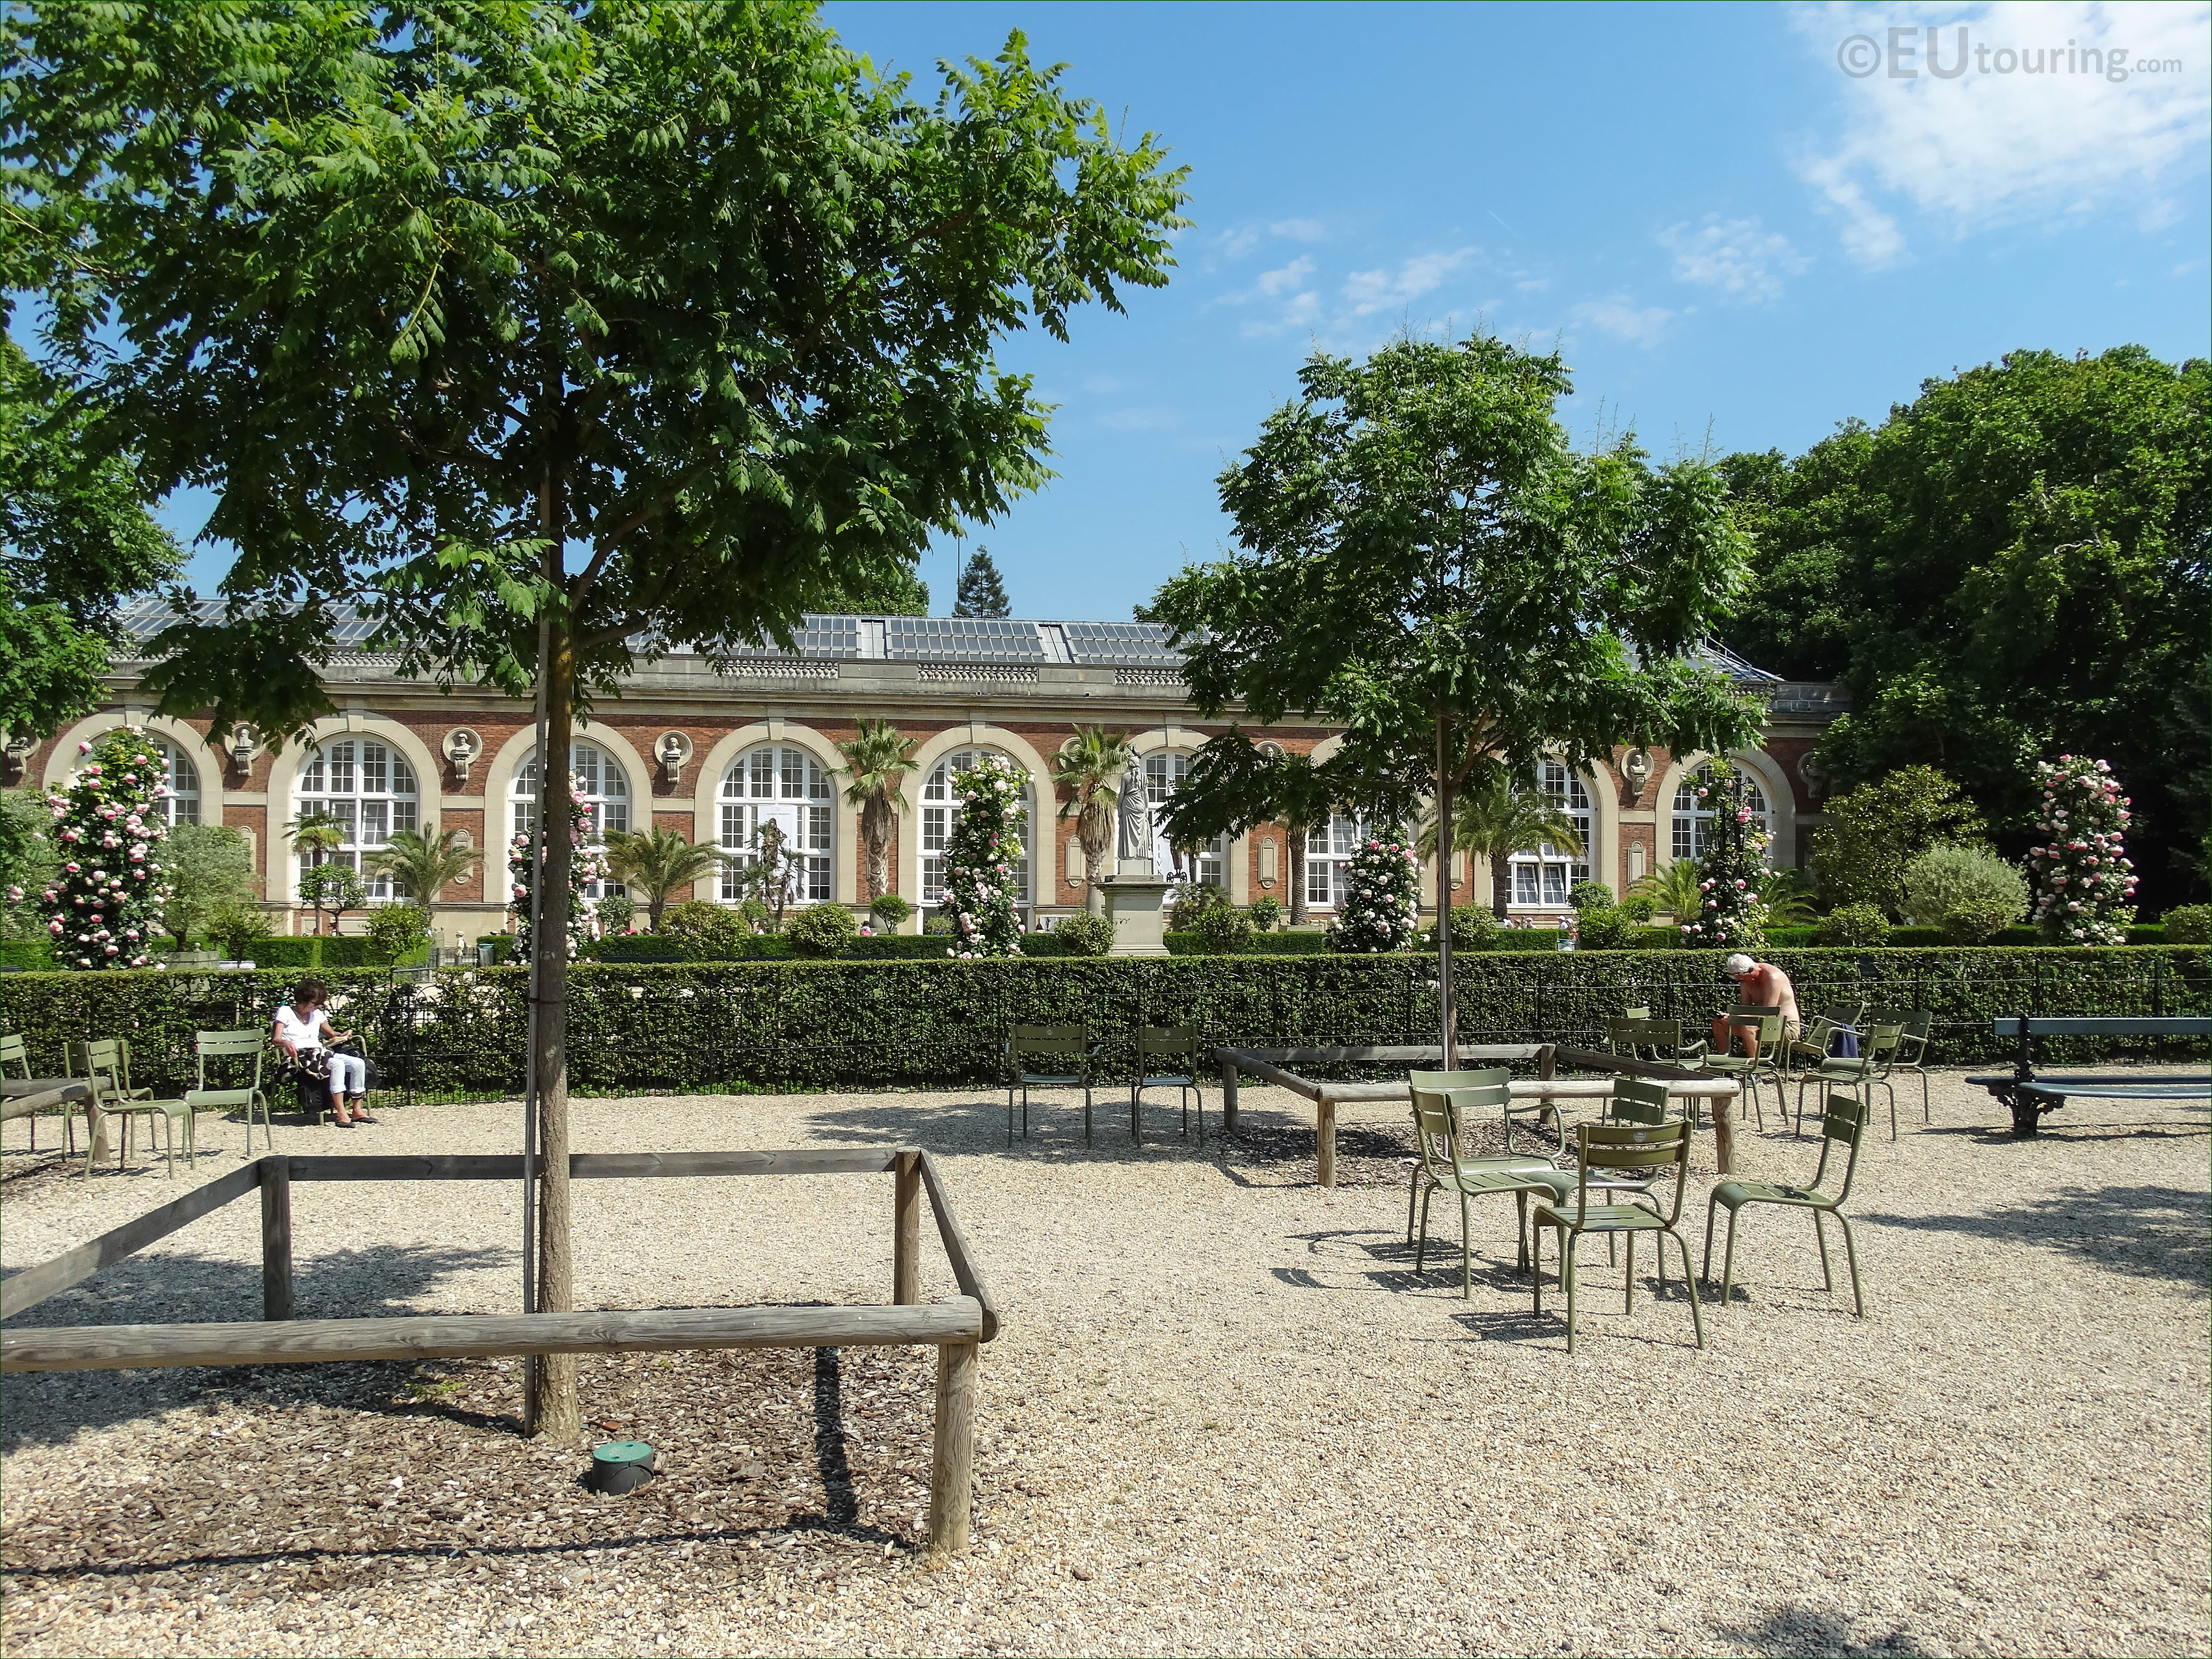 Photos of the orangerie building in jardin du luxembourg for Jardin du luxembourg